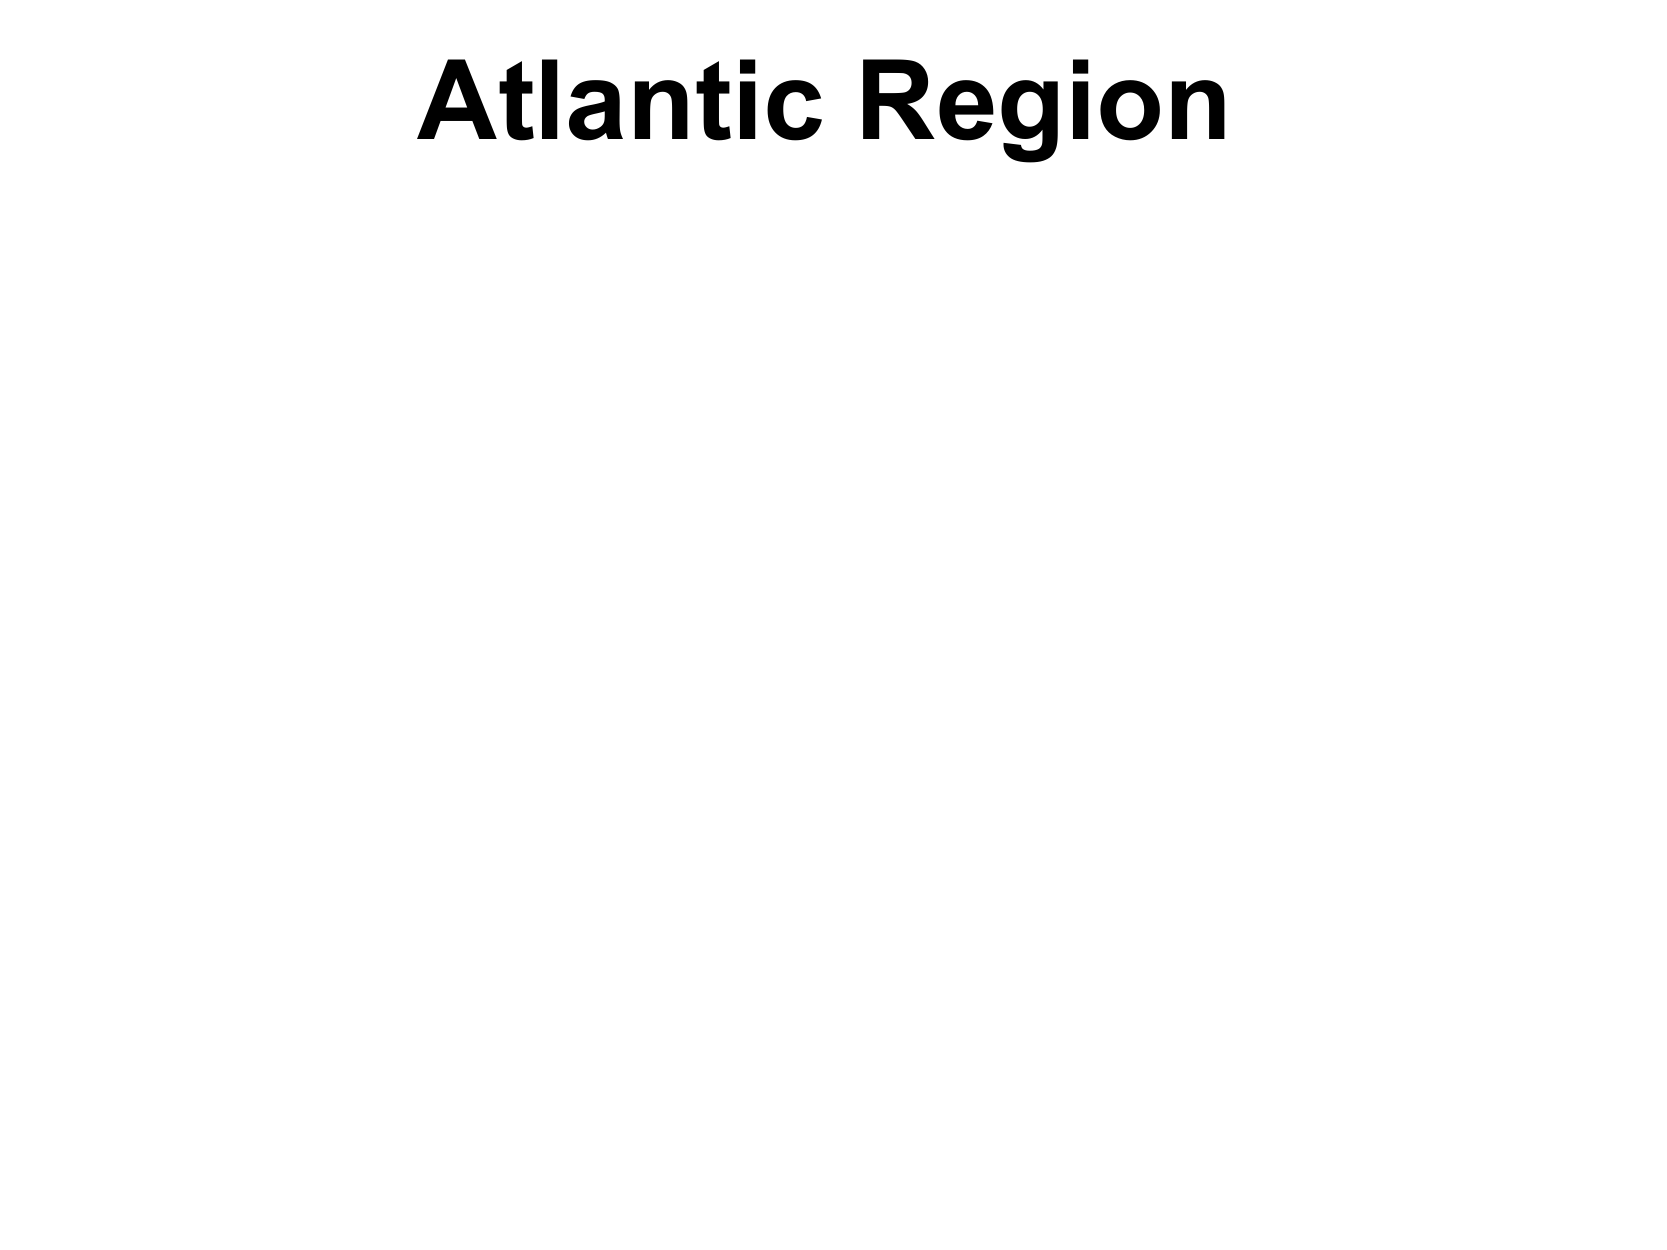 Atlantic Region Resource Preview